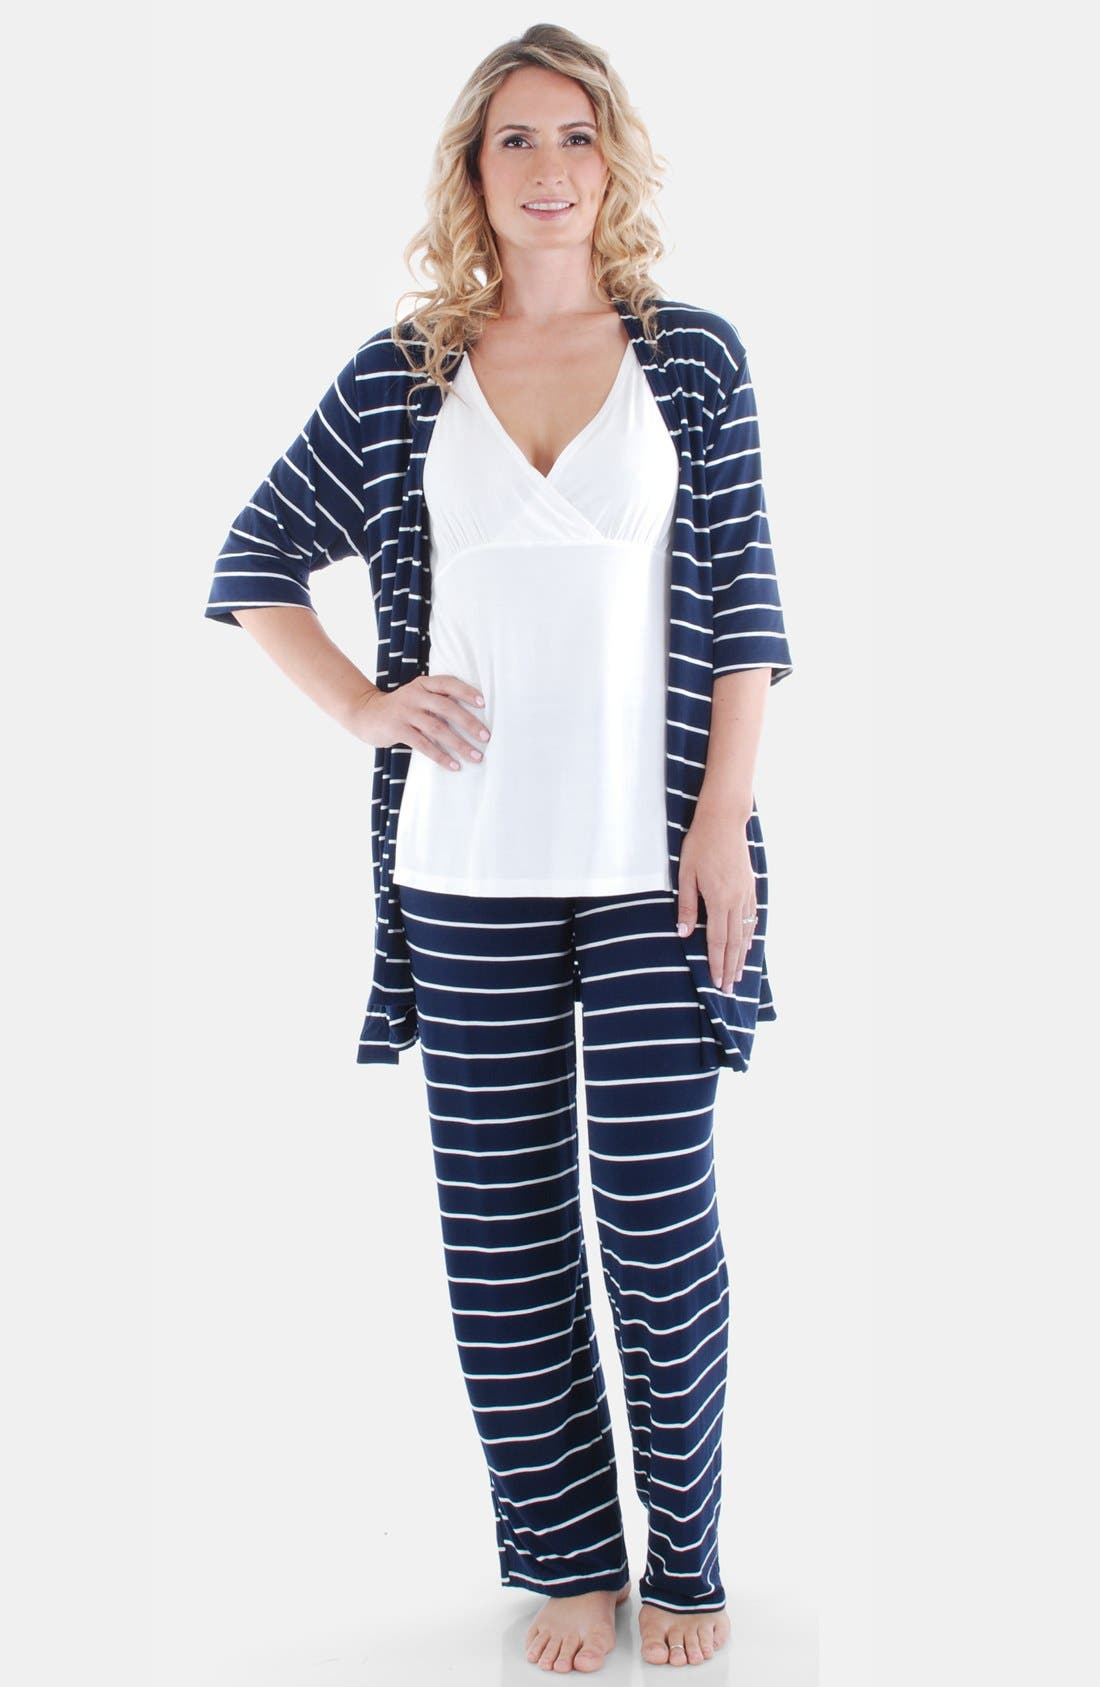 EVERLY GREY, Roxanne - During & After 5-Piece Maternity Sleepwear Set, Alternate thumbnail 6, color, NAVY